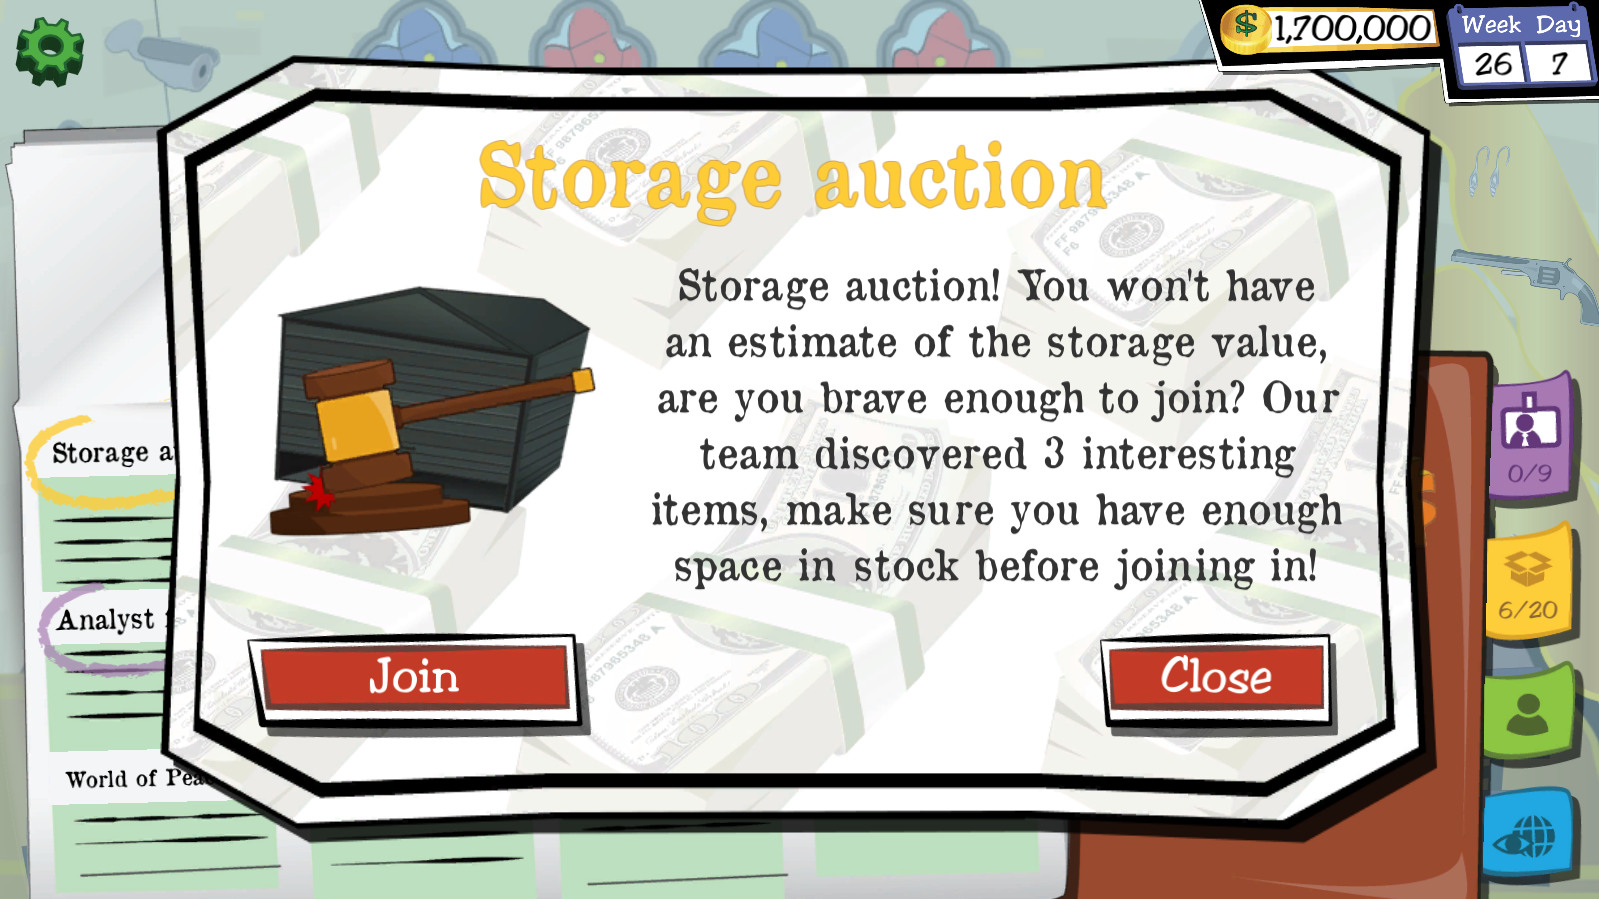 AuctionStorageIcon